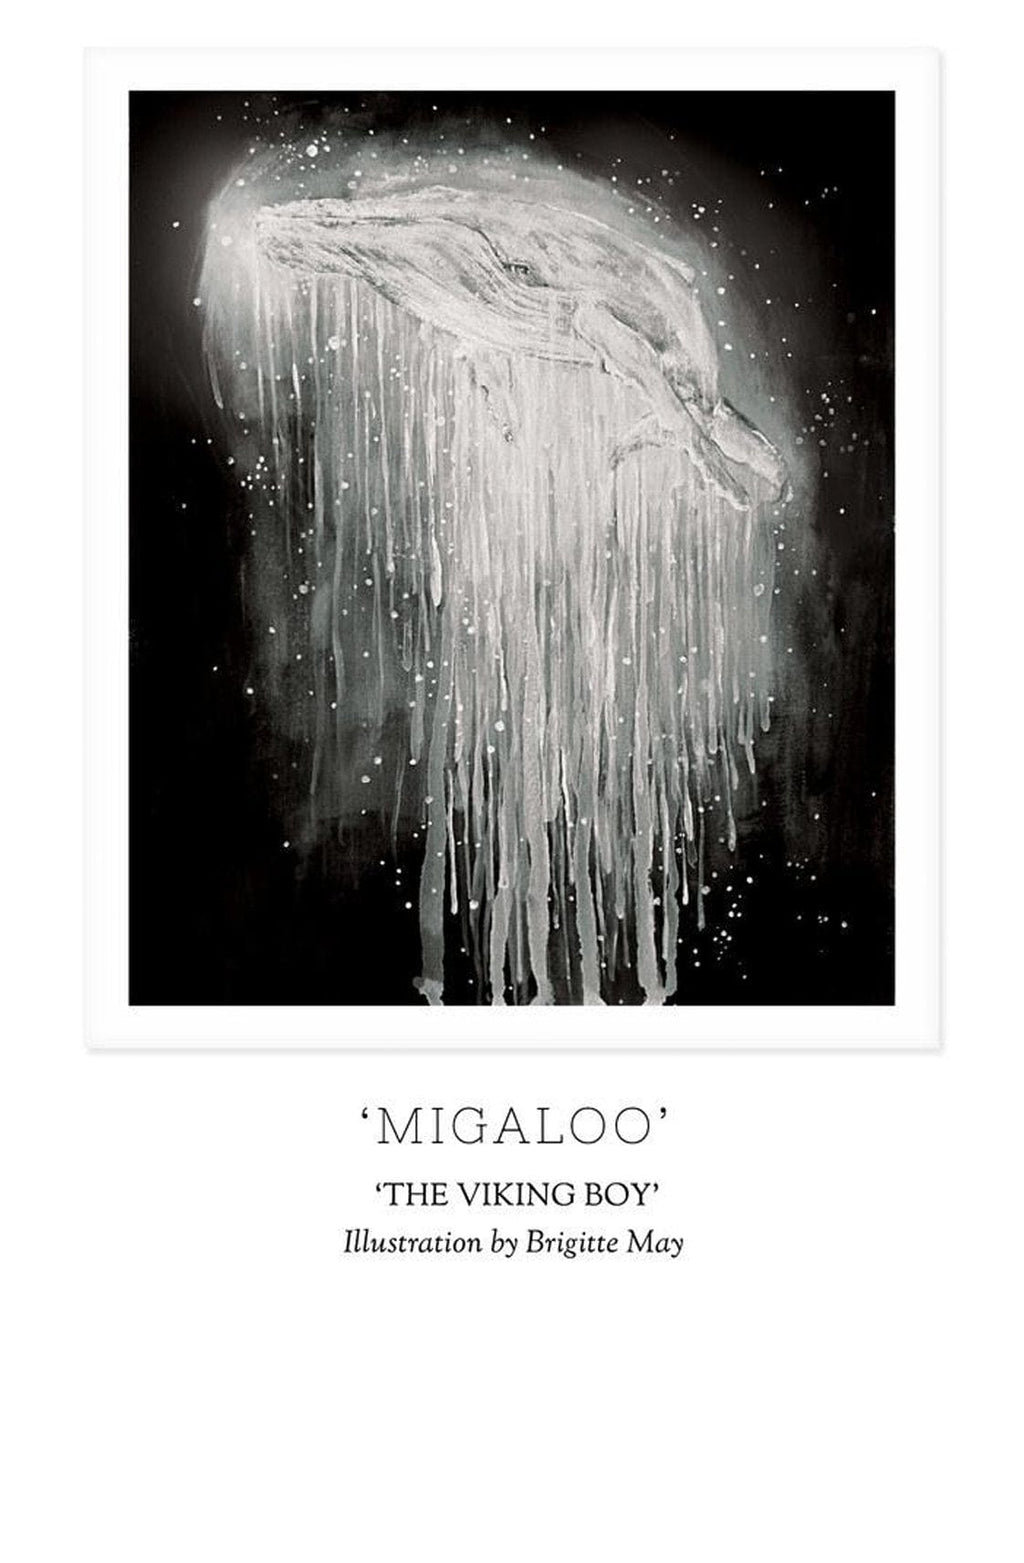 THE VIKING BOY - 'MIGALOO' Print